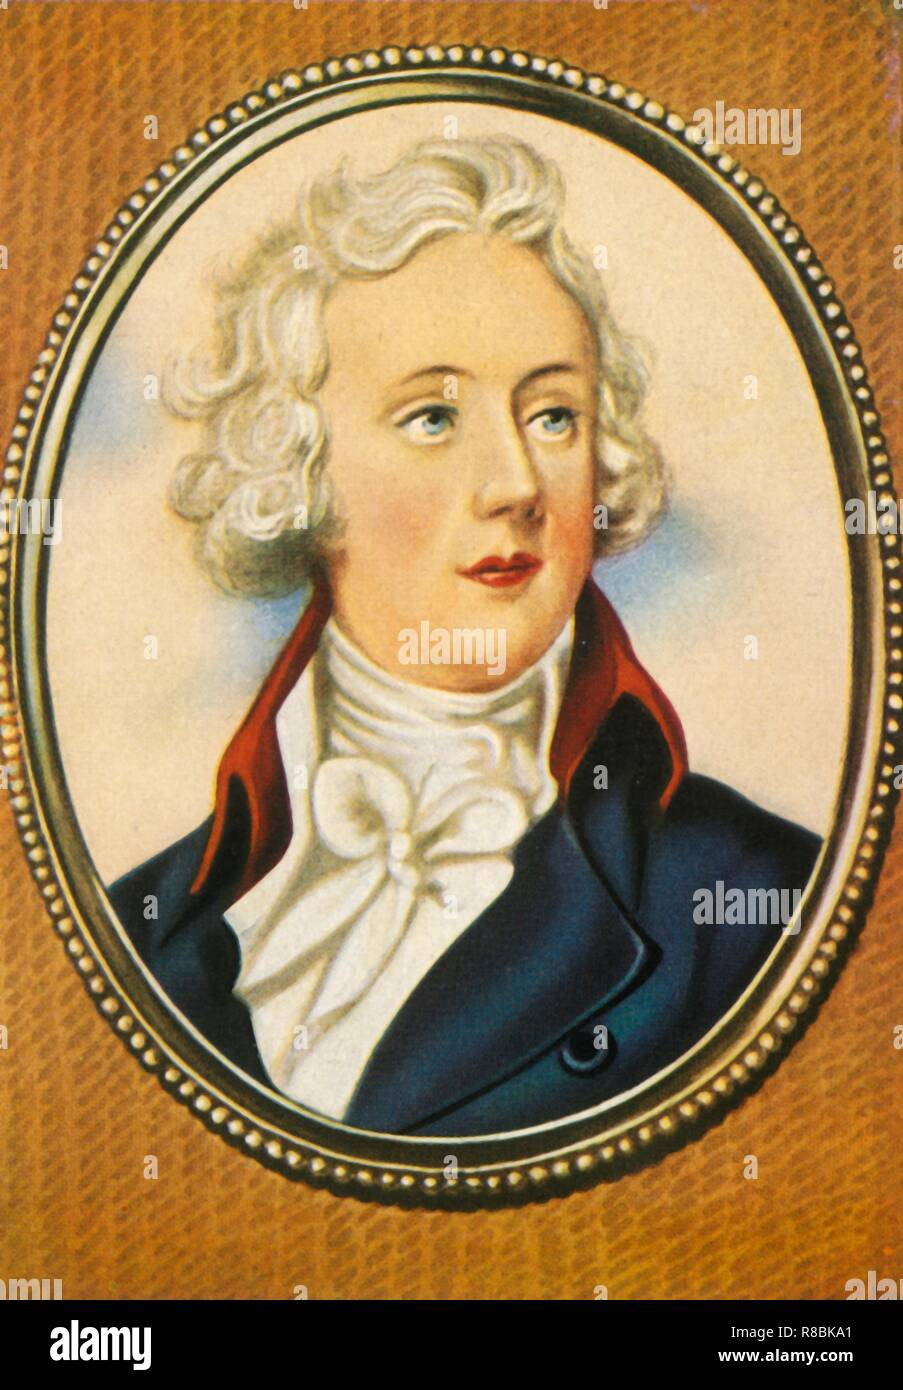 "'William Pitt', (1933). Portrait of William Pitt the Younger, British politician and Prime Minister (1759-1806). Pitt became Prime Minister at the age of 24, making him the youngest to hold the office in British history. He was also one of the longest serving Prime Ministers, holding office from 1783-1801 and then again from 1804-1806. After a miniature by Horace Hone. From ""Gestalten Der Weltgeschichte"", a book of cigarette-card portrait miniatures of figures in world history from the last four hundred years. [Germany, 1933] - Stock Image"